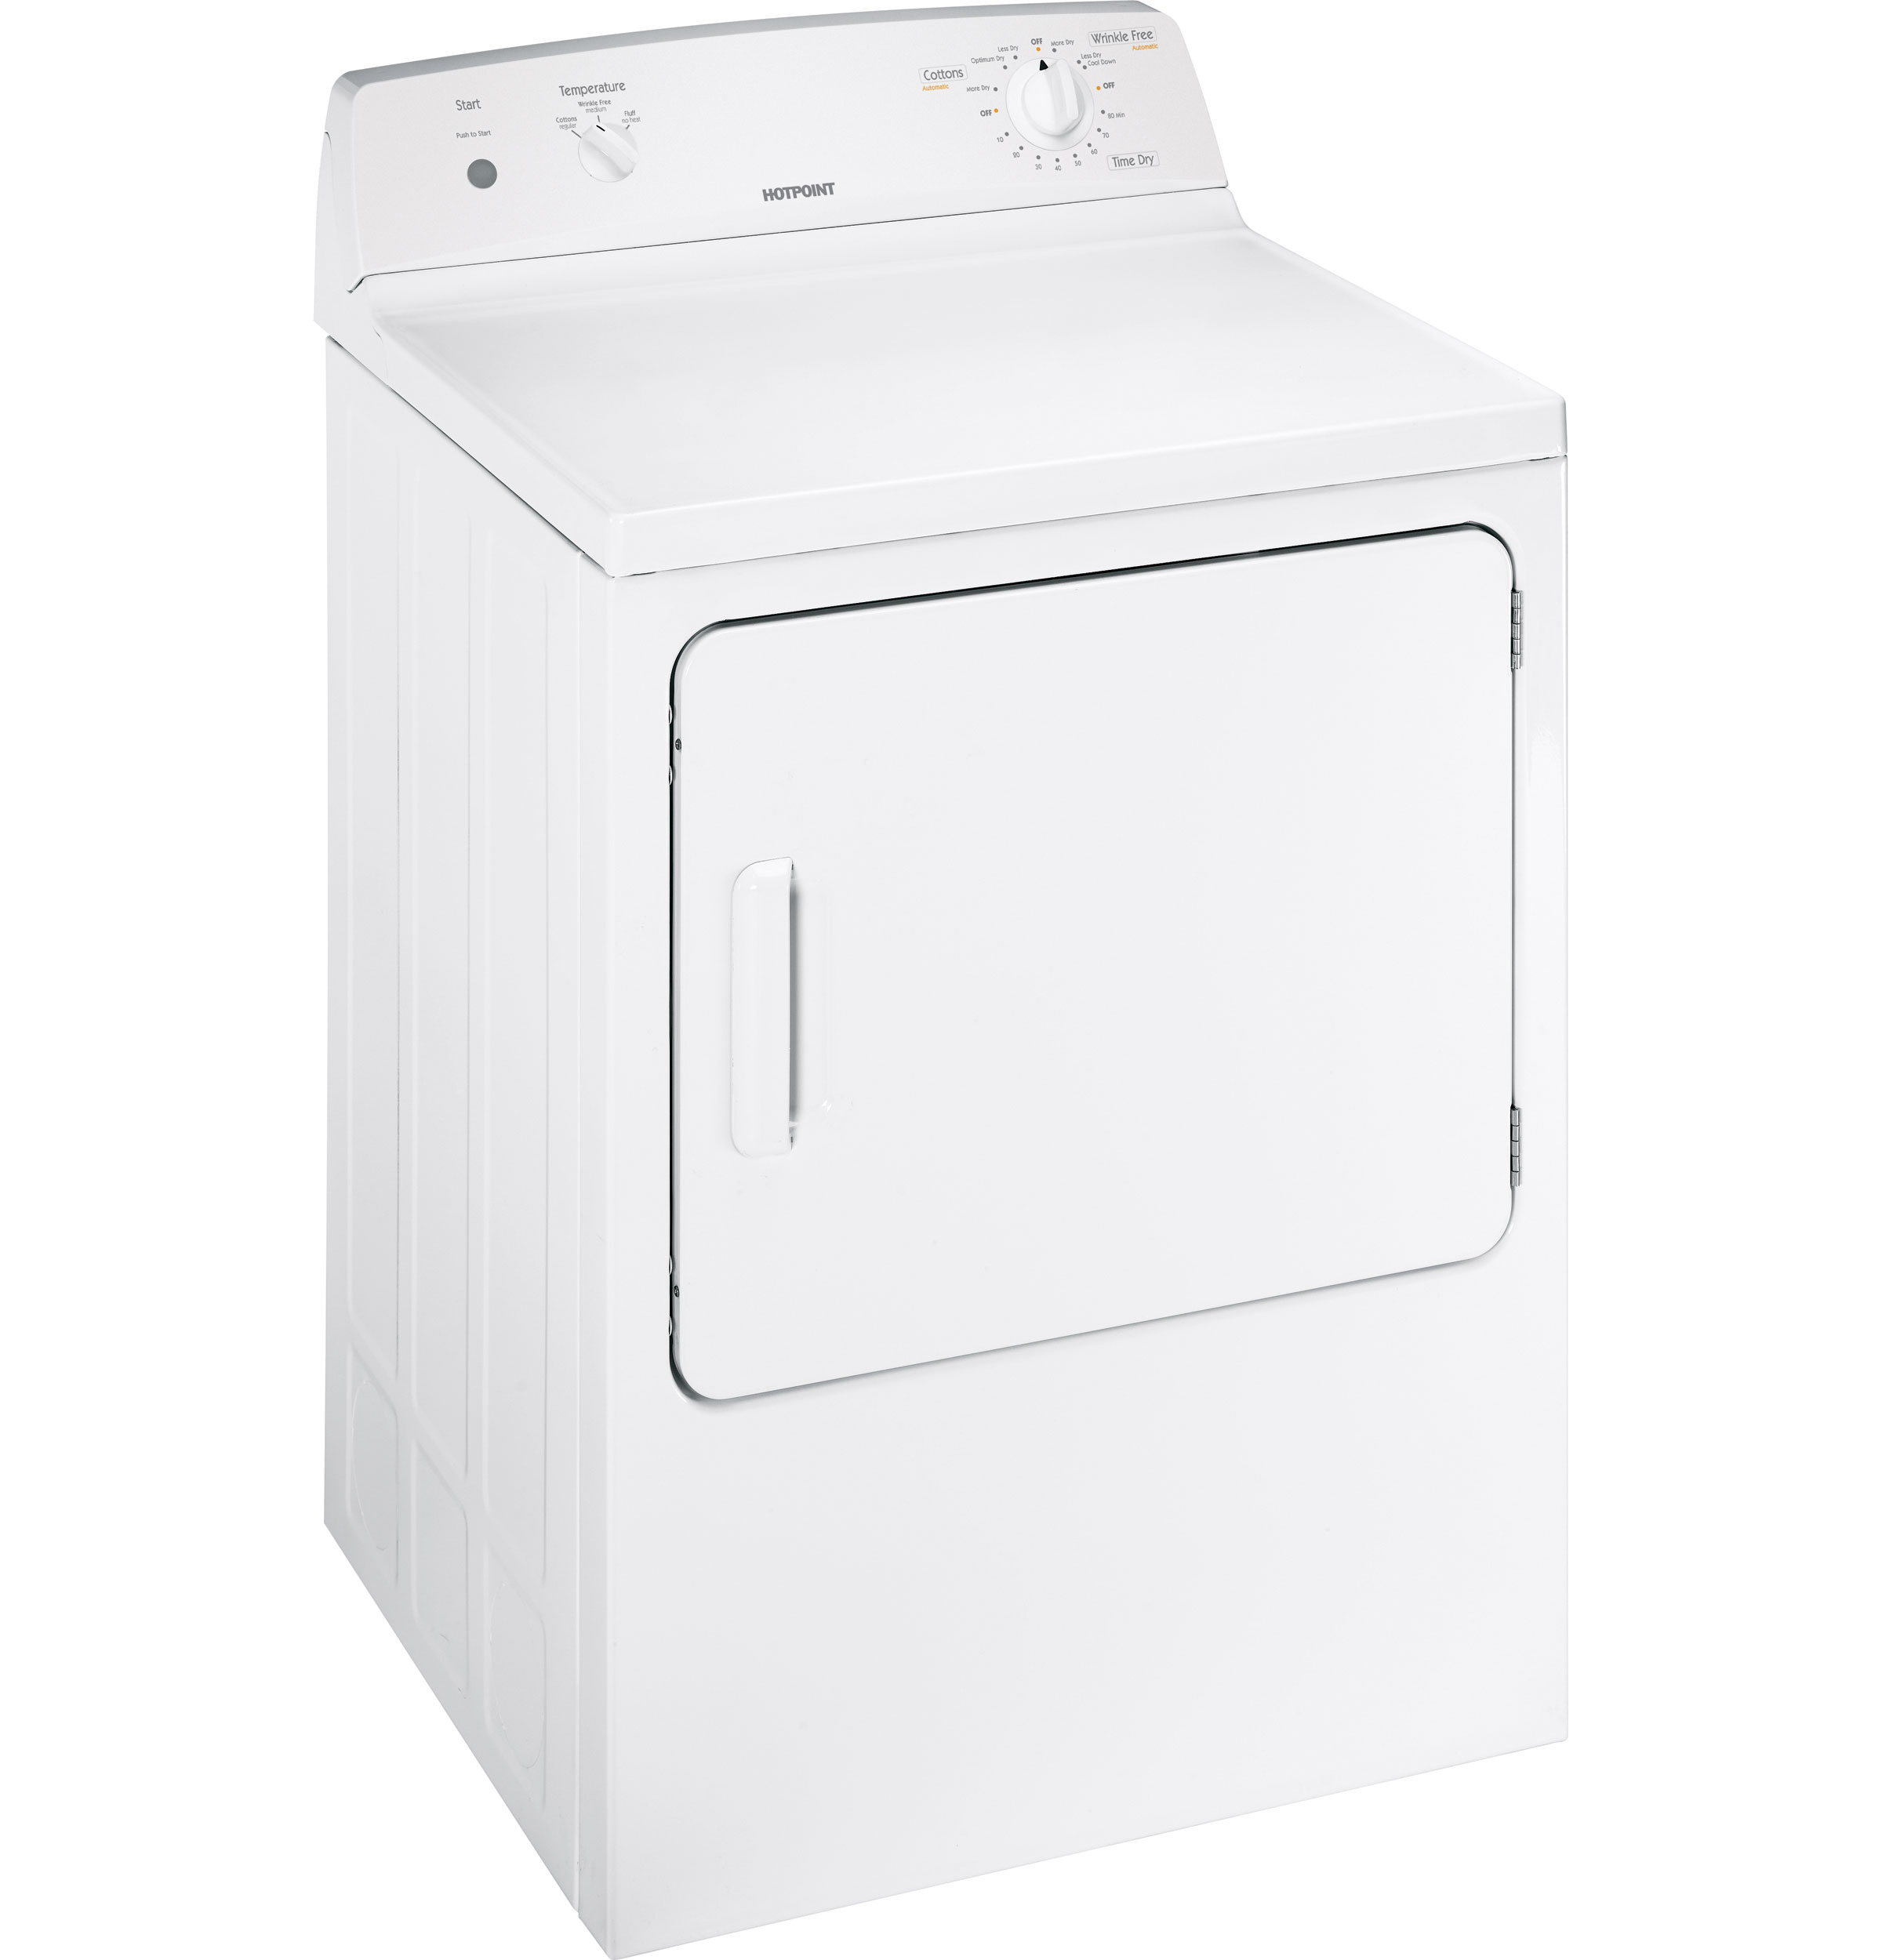 Hotpoint washer wma56 user guide   manualsonline. Com.